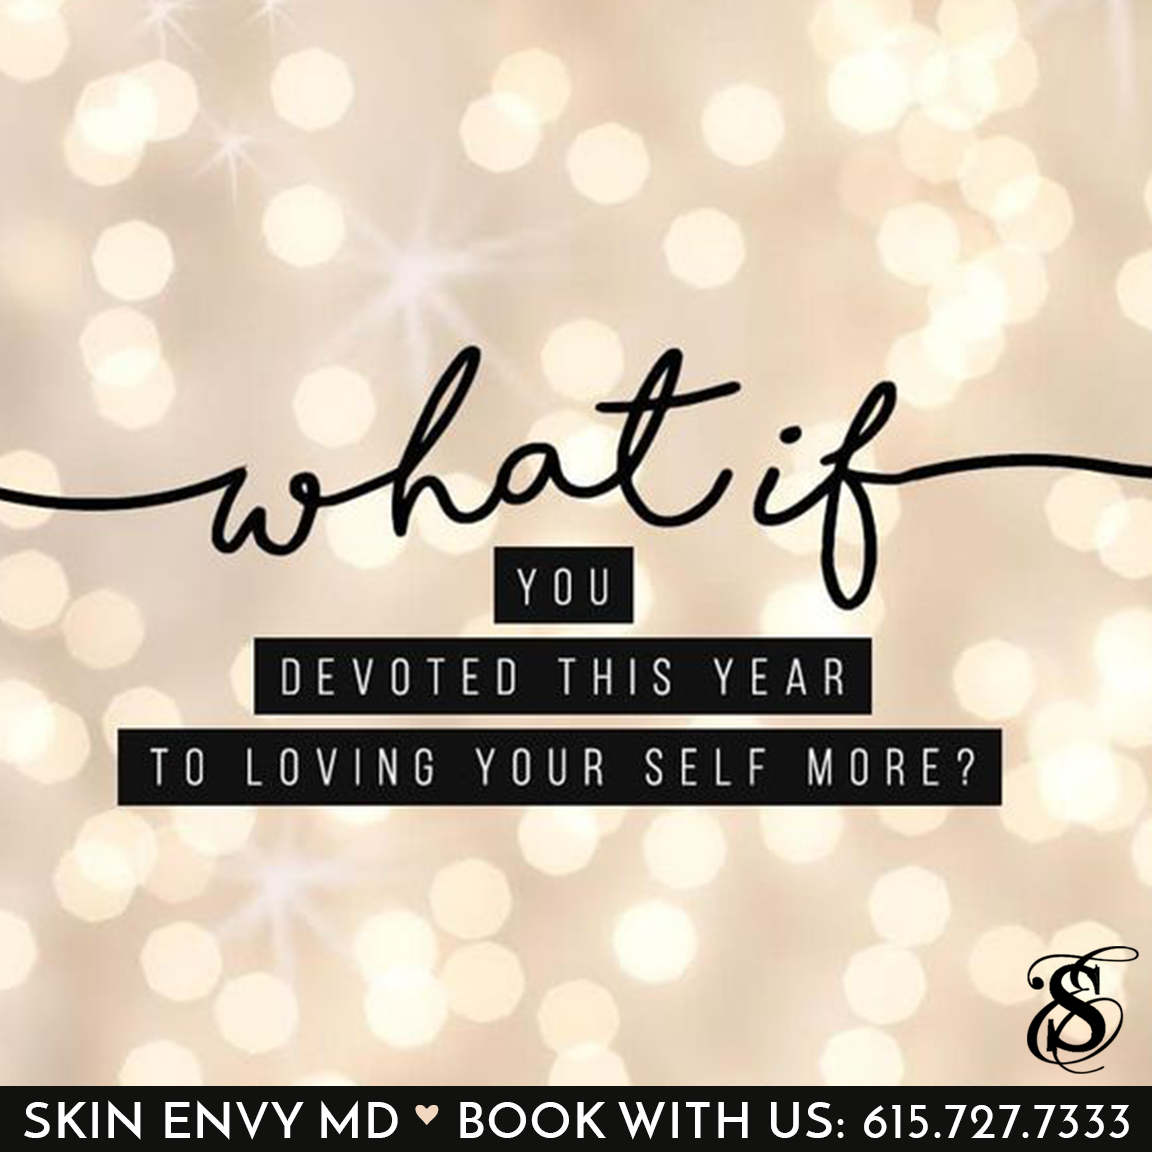 What if you devoted this year to loving your self more  - Botox Dysport Juvederm Restylane by Skin Envy MD Nashville.png